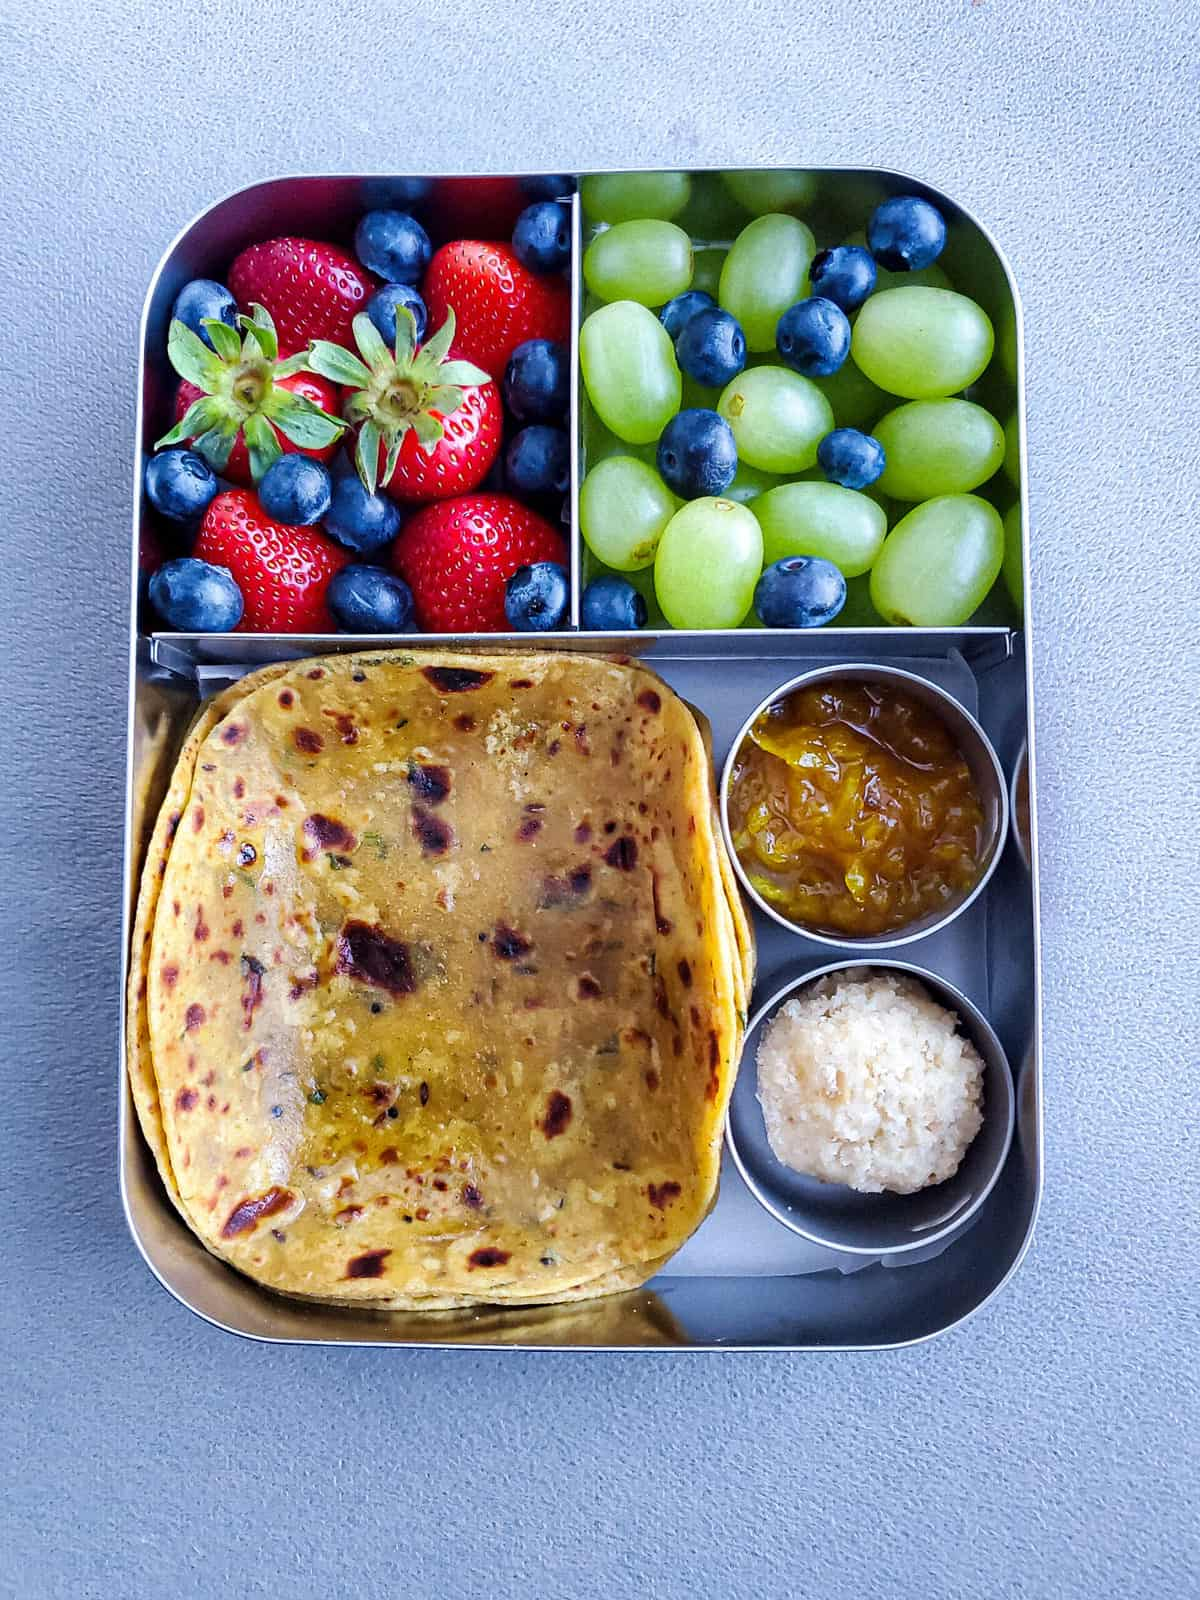 Leftover Dal Paratha with fruits and ladoo in stainless steel Lunchbox